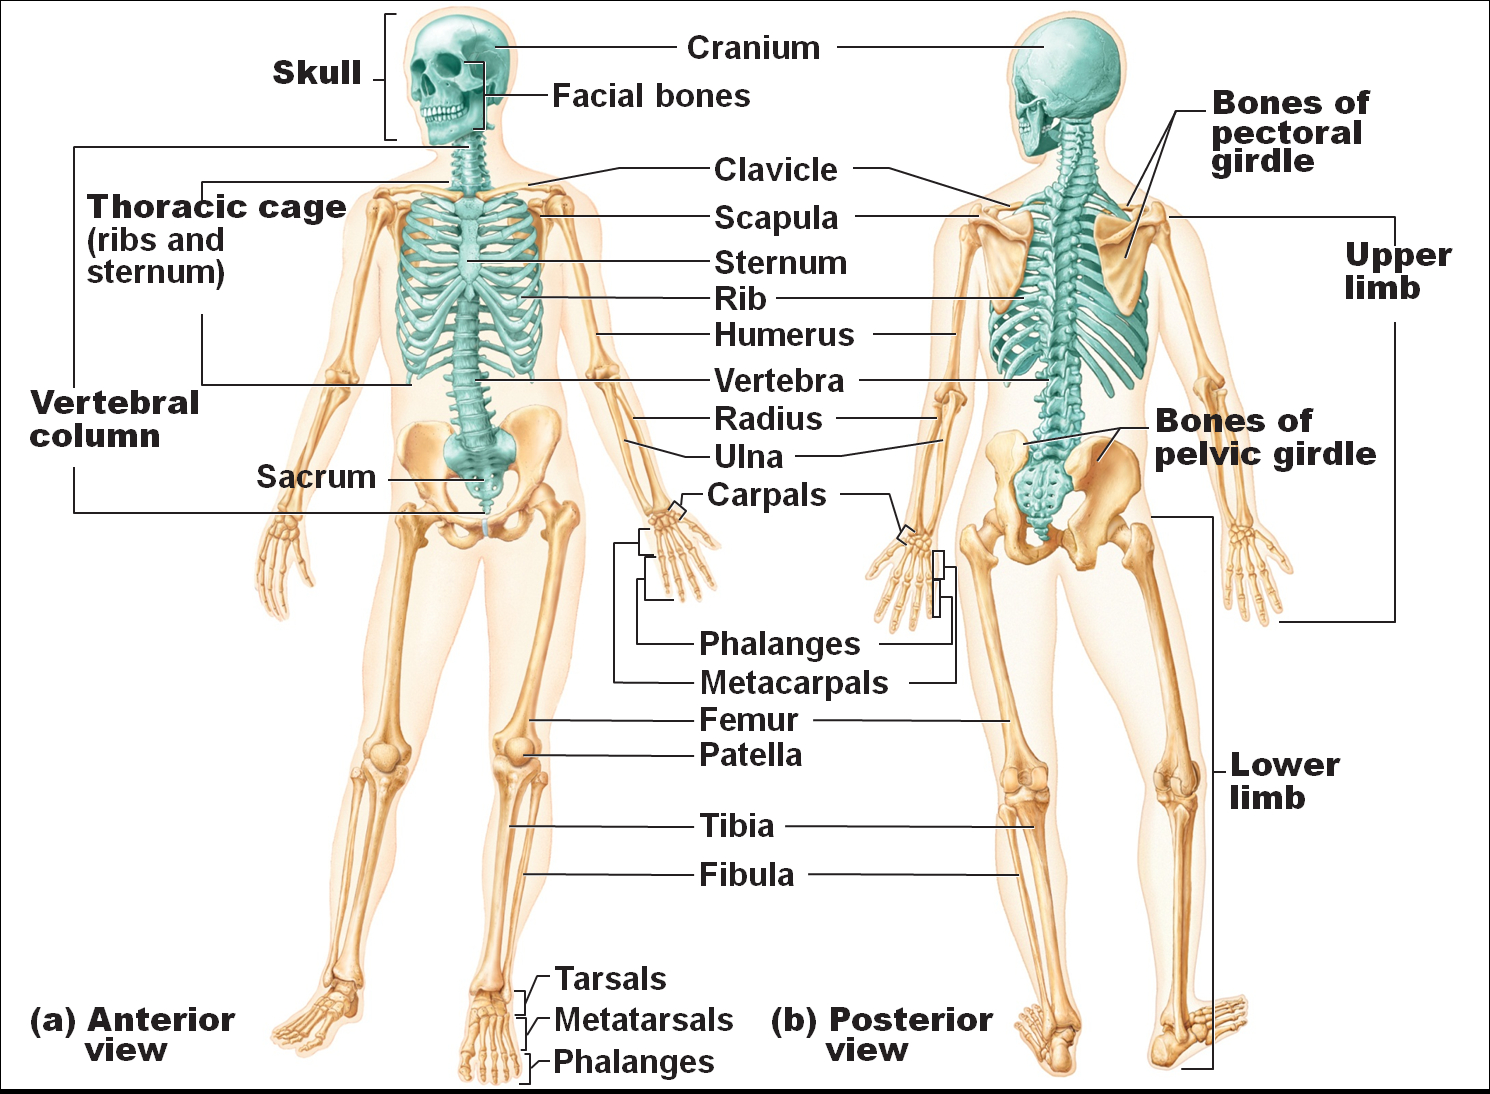 Skeletal System Diagram What Part Of The Skeletal System Includes The Bones Of The Skull